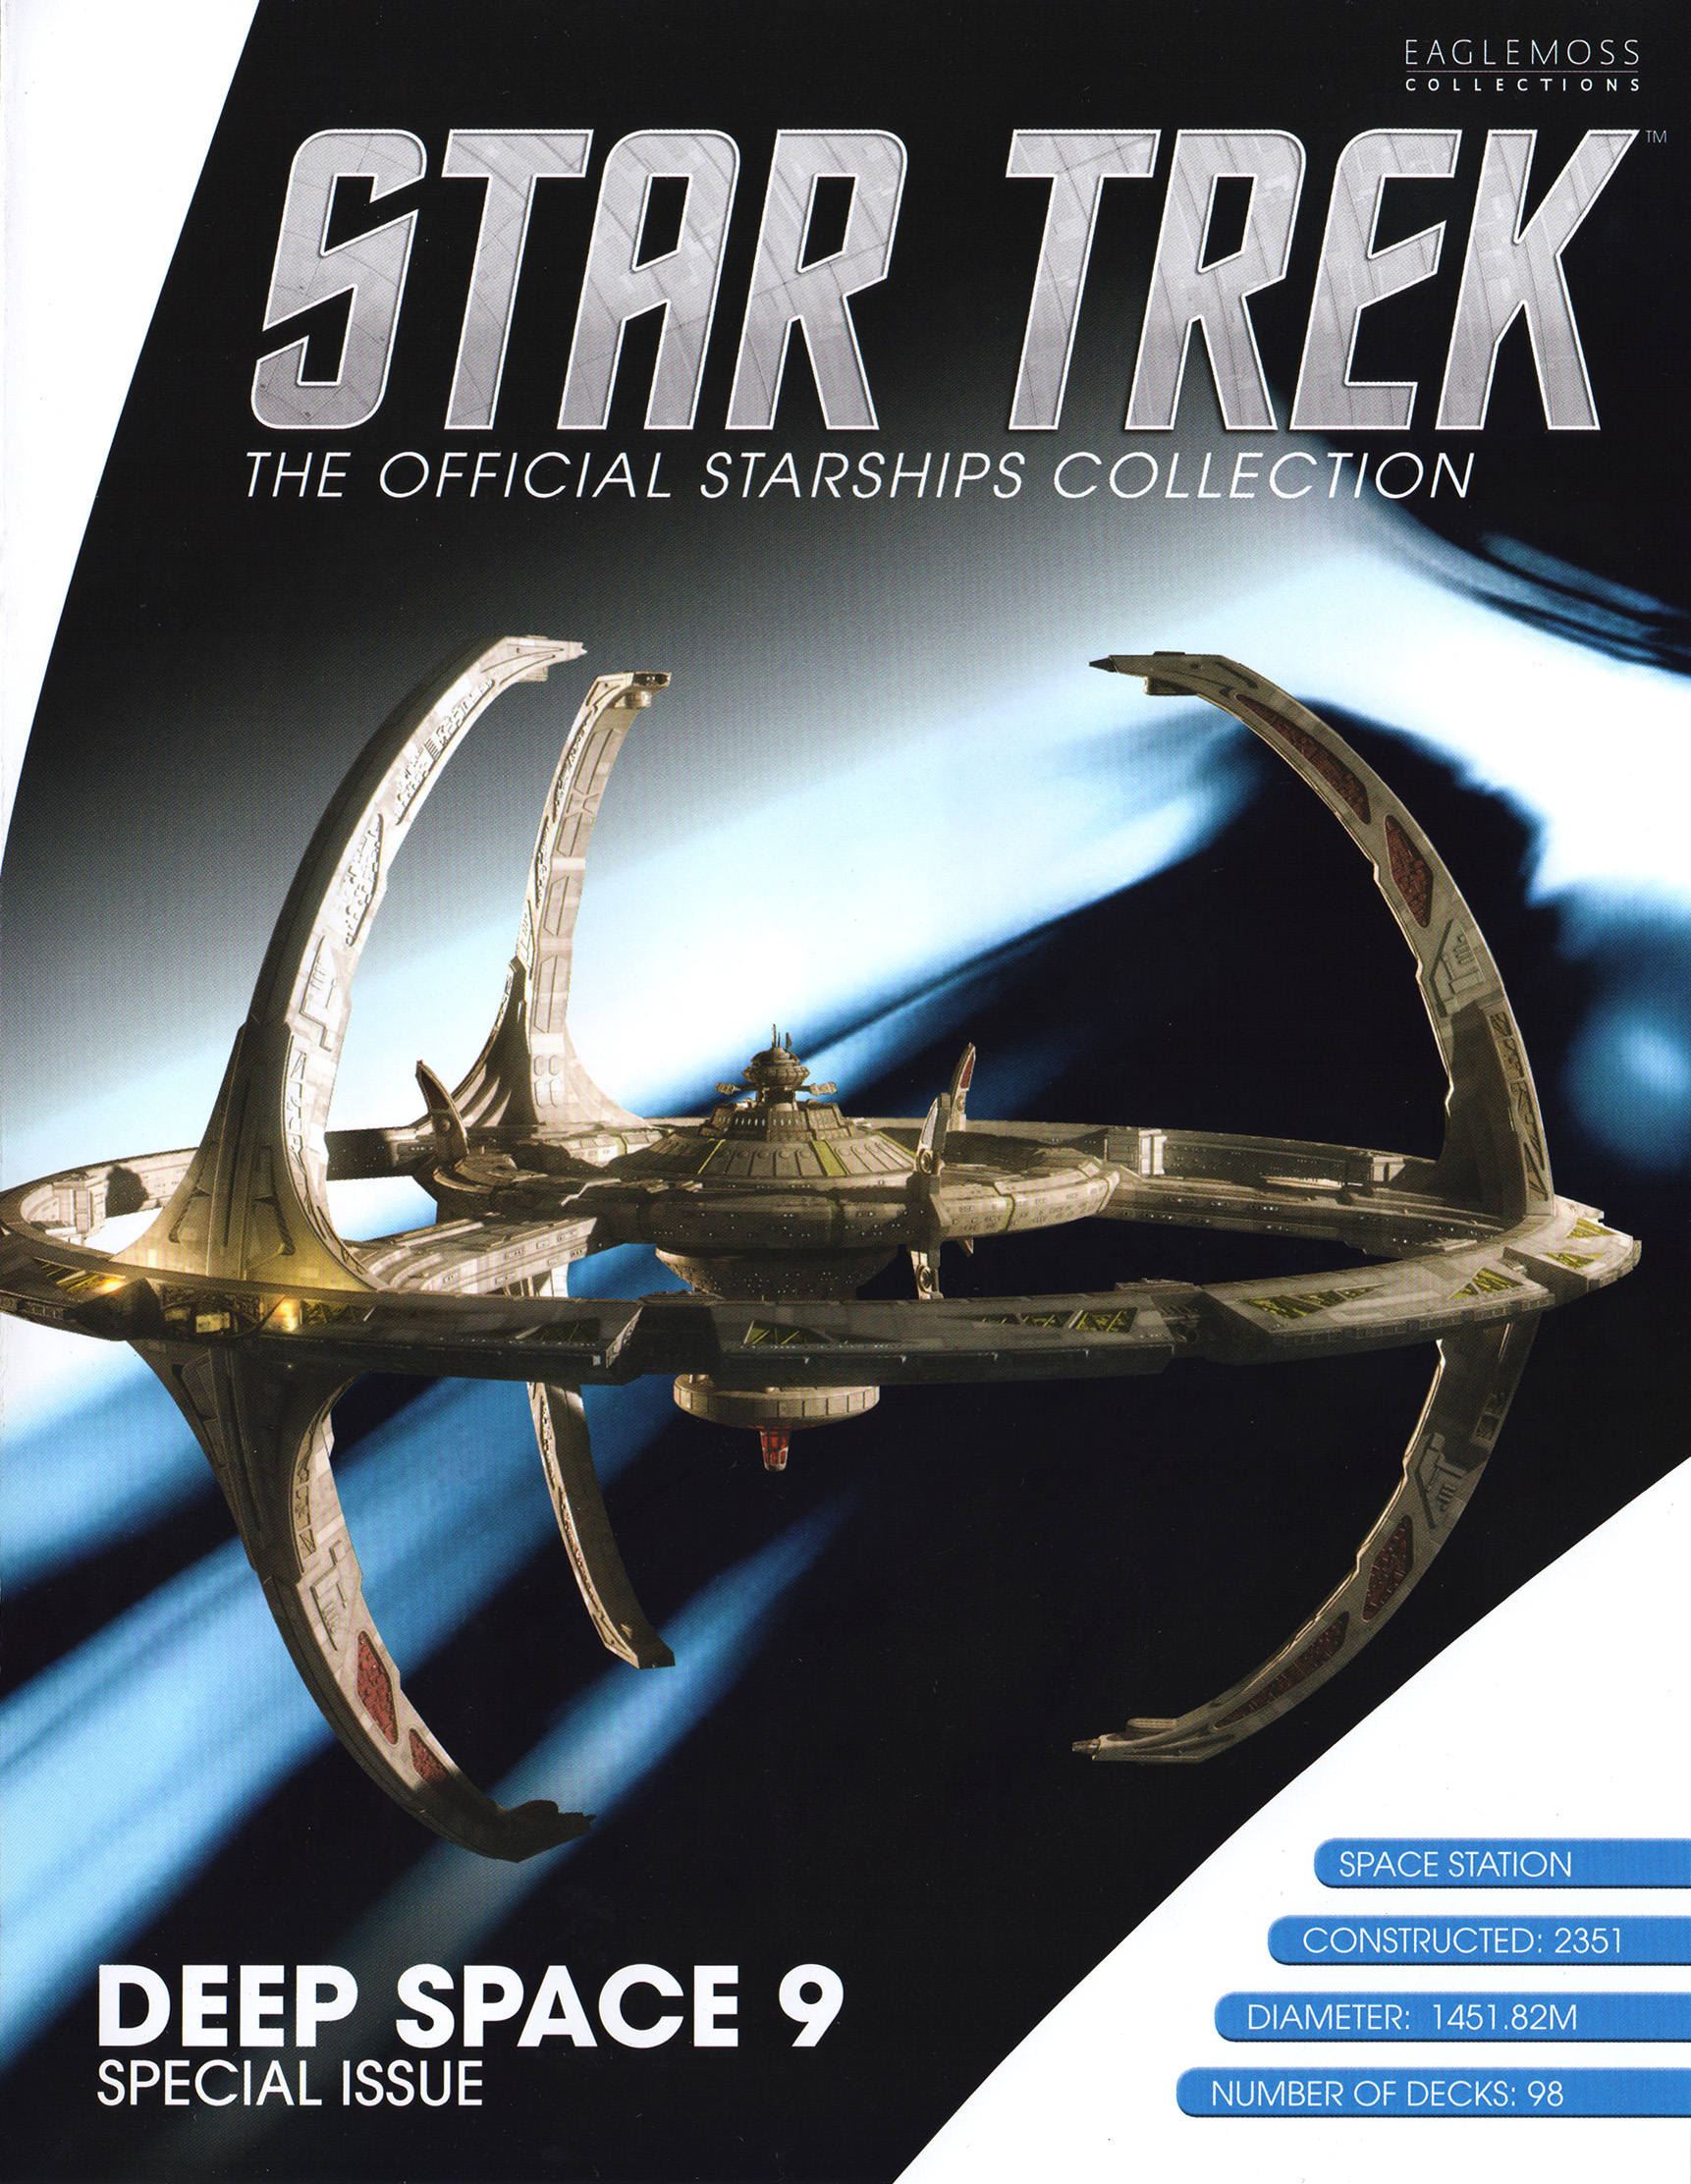 Eaglemoss Star Trek Starships XL Issue 17